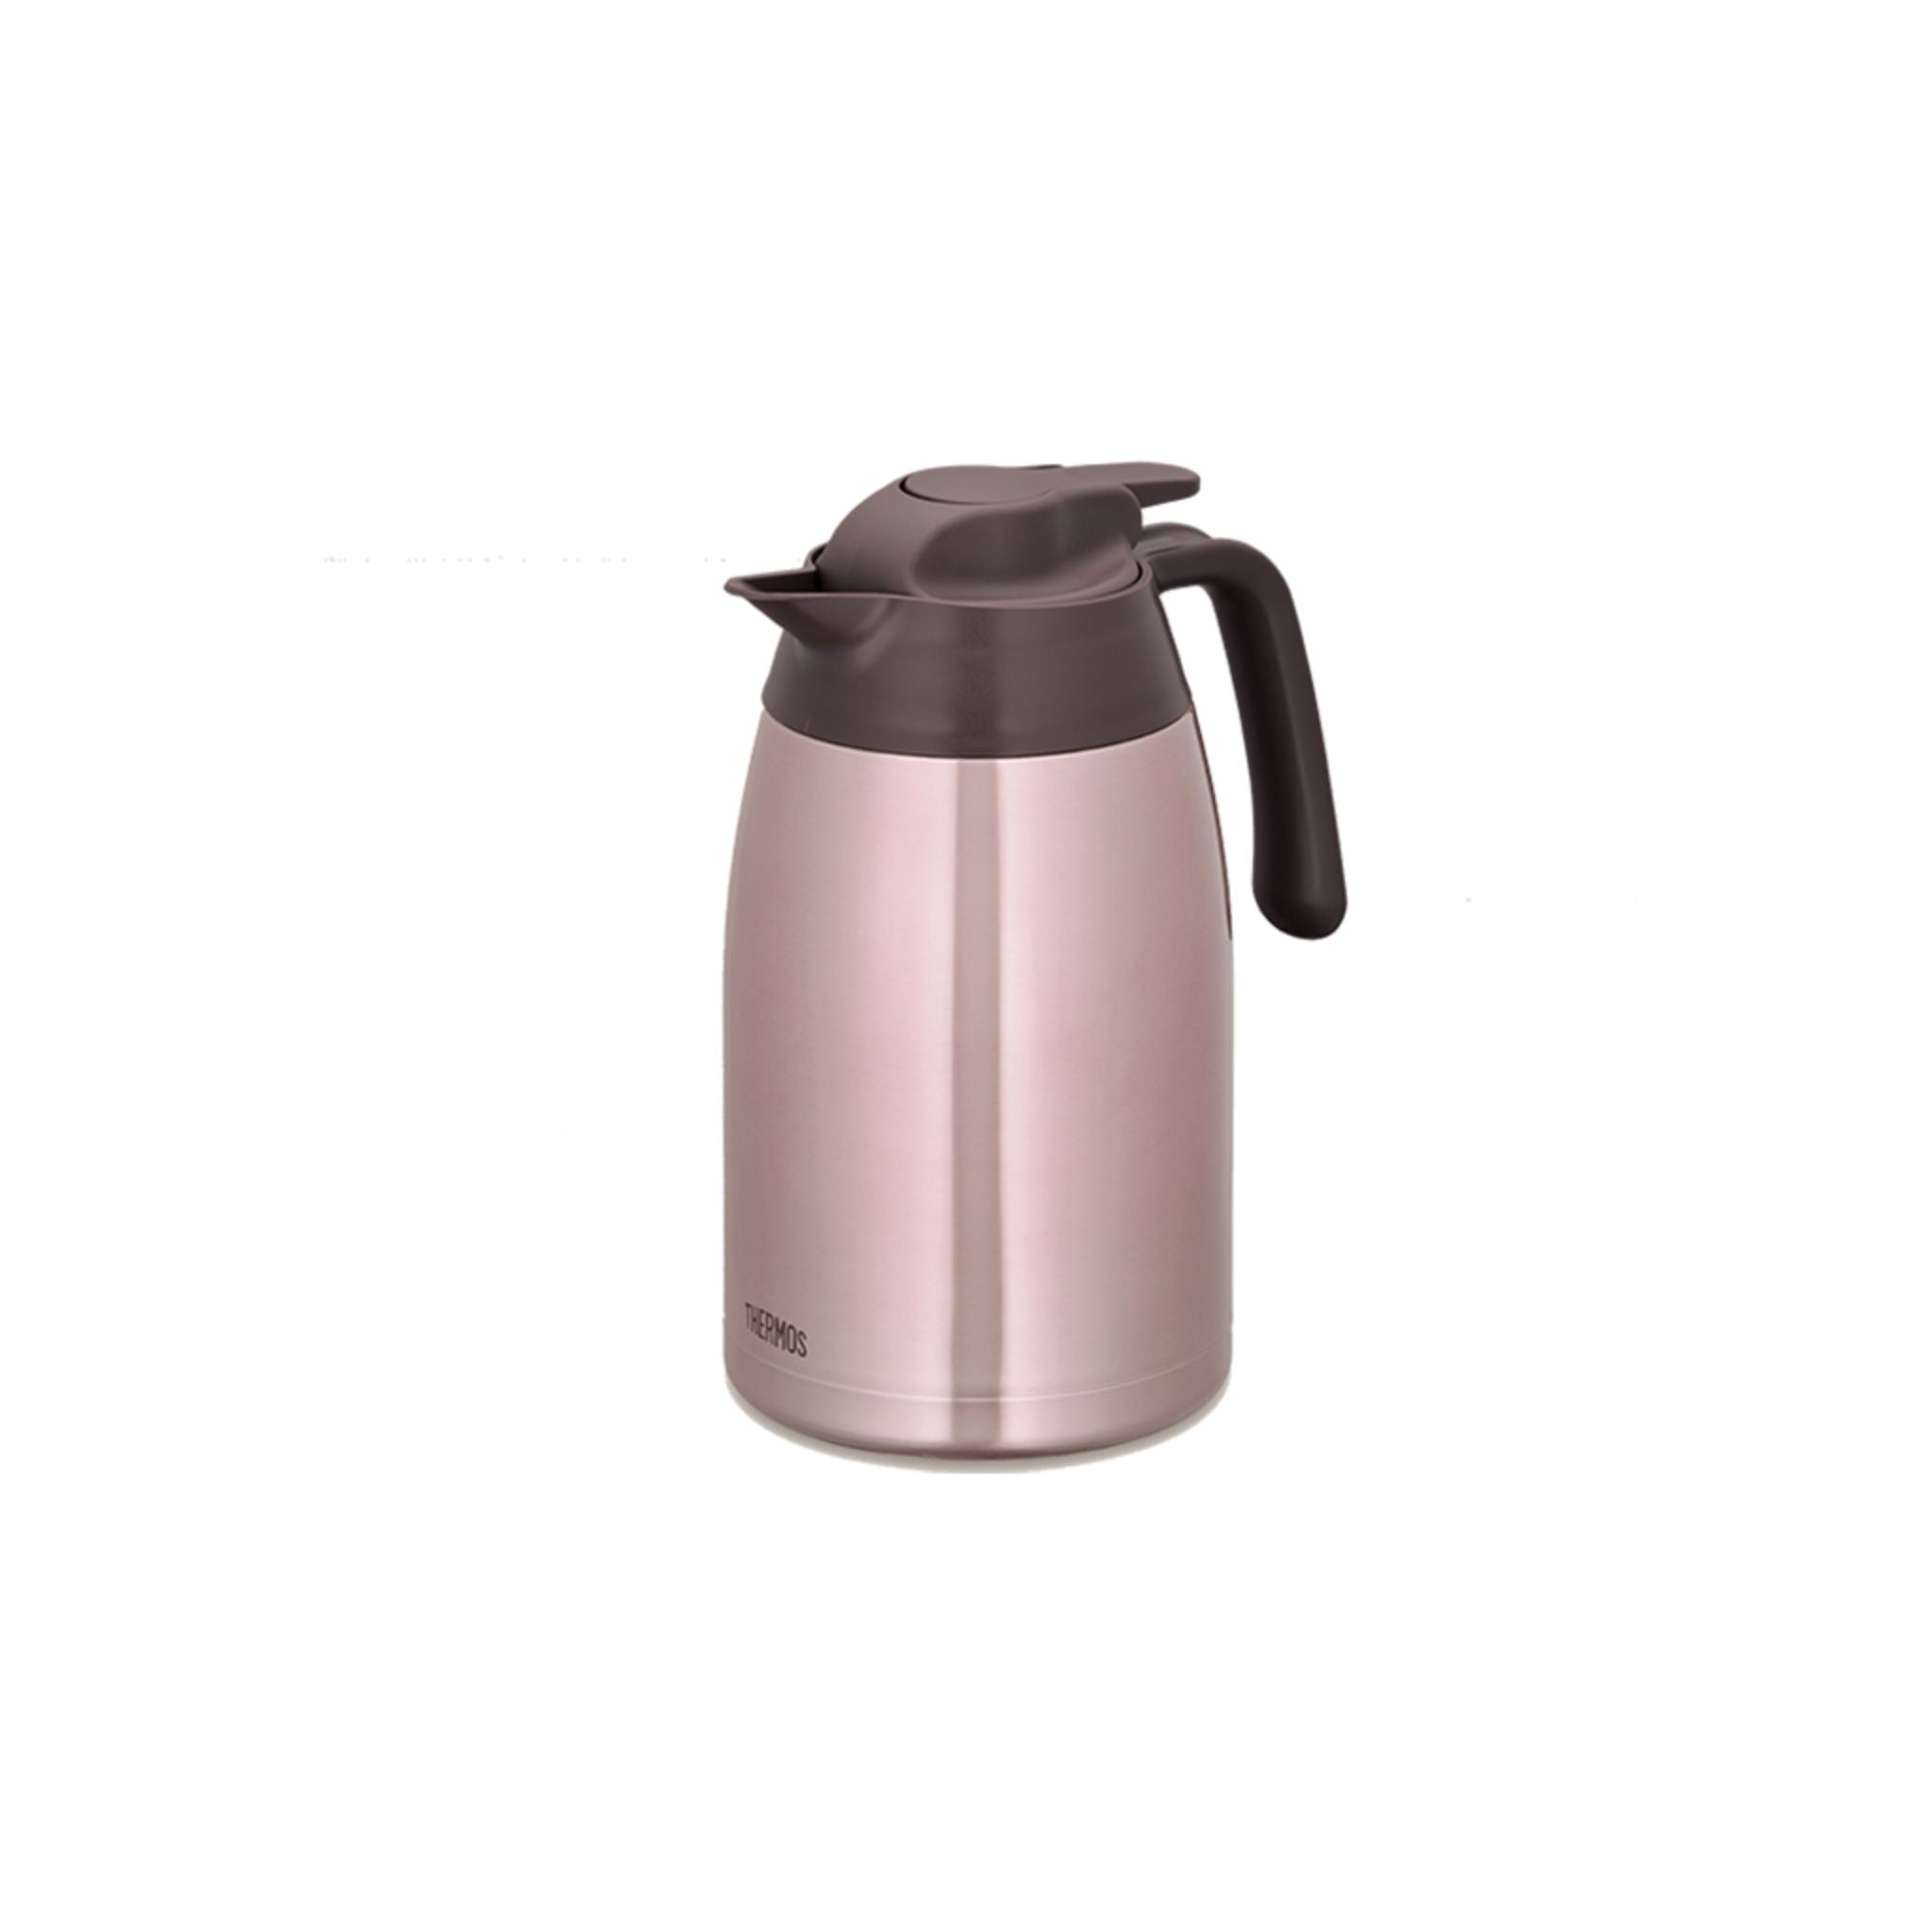 Thermos 1.5L Stainless Steel Vacuum Insulation Carafe - Cacao